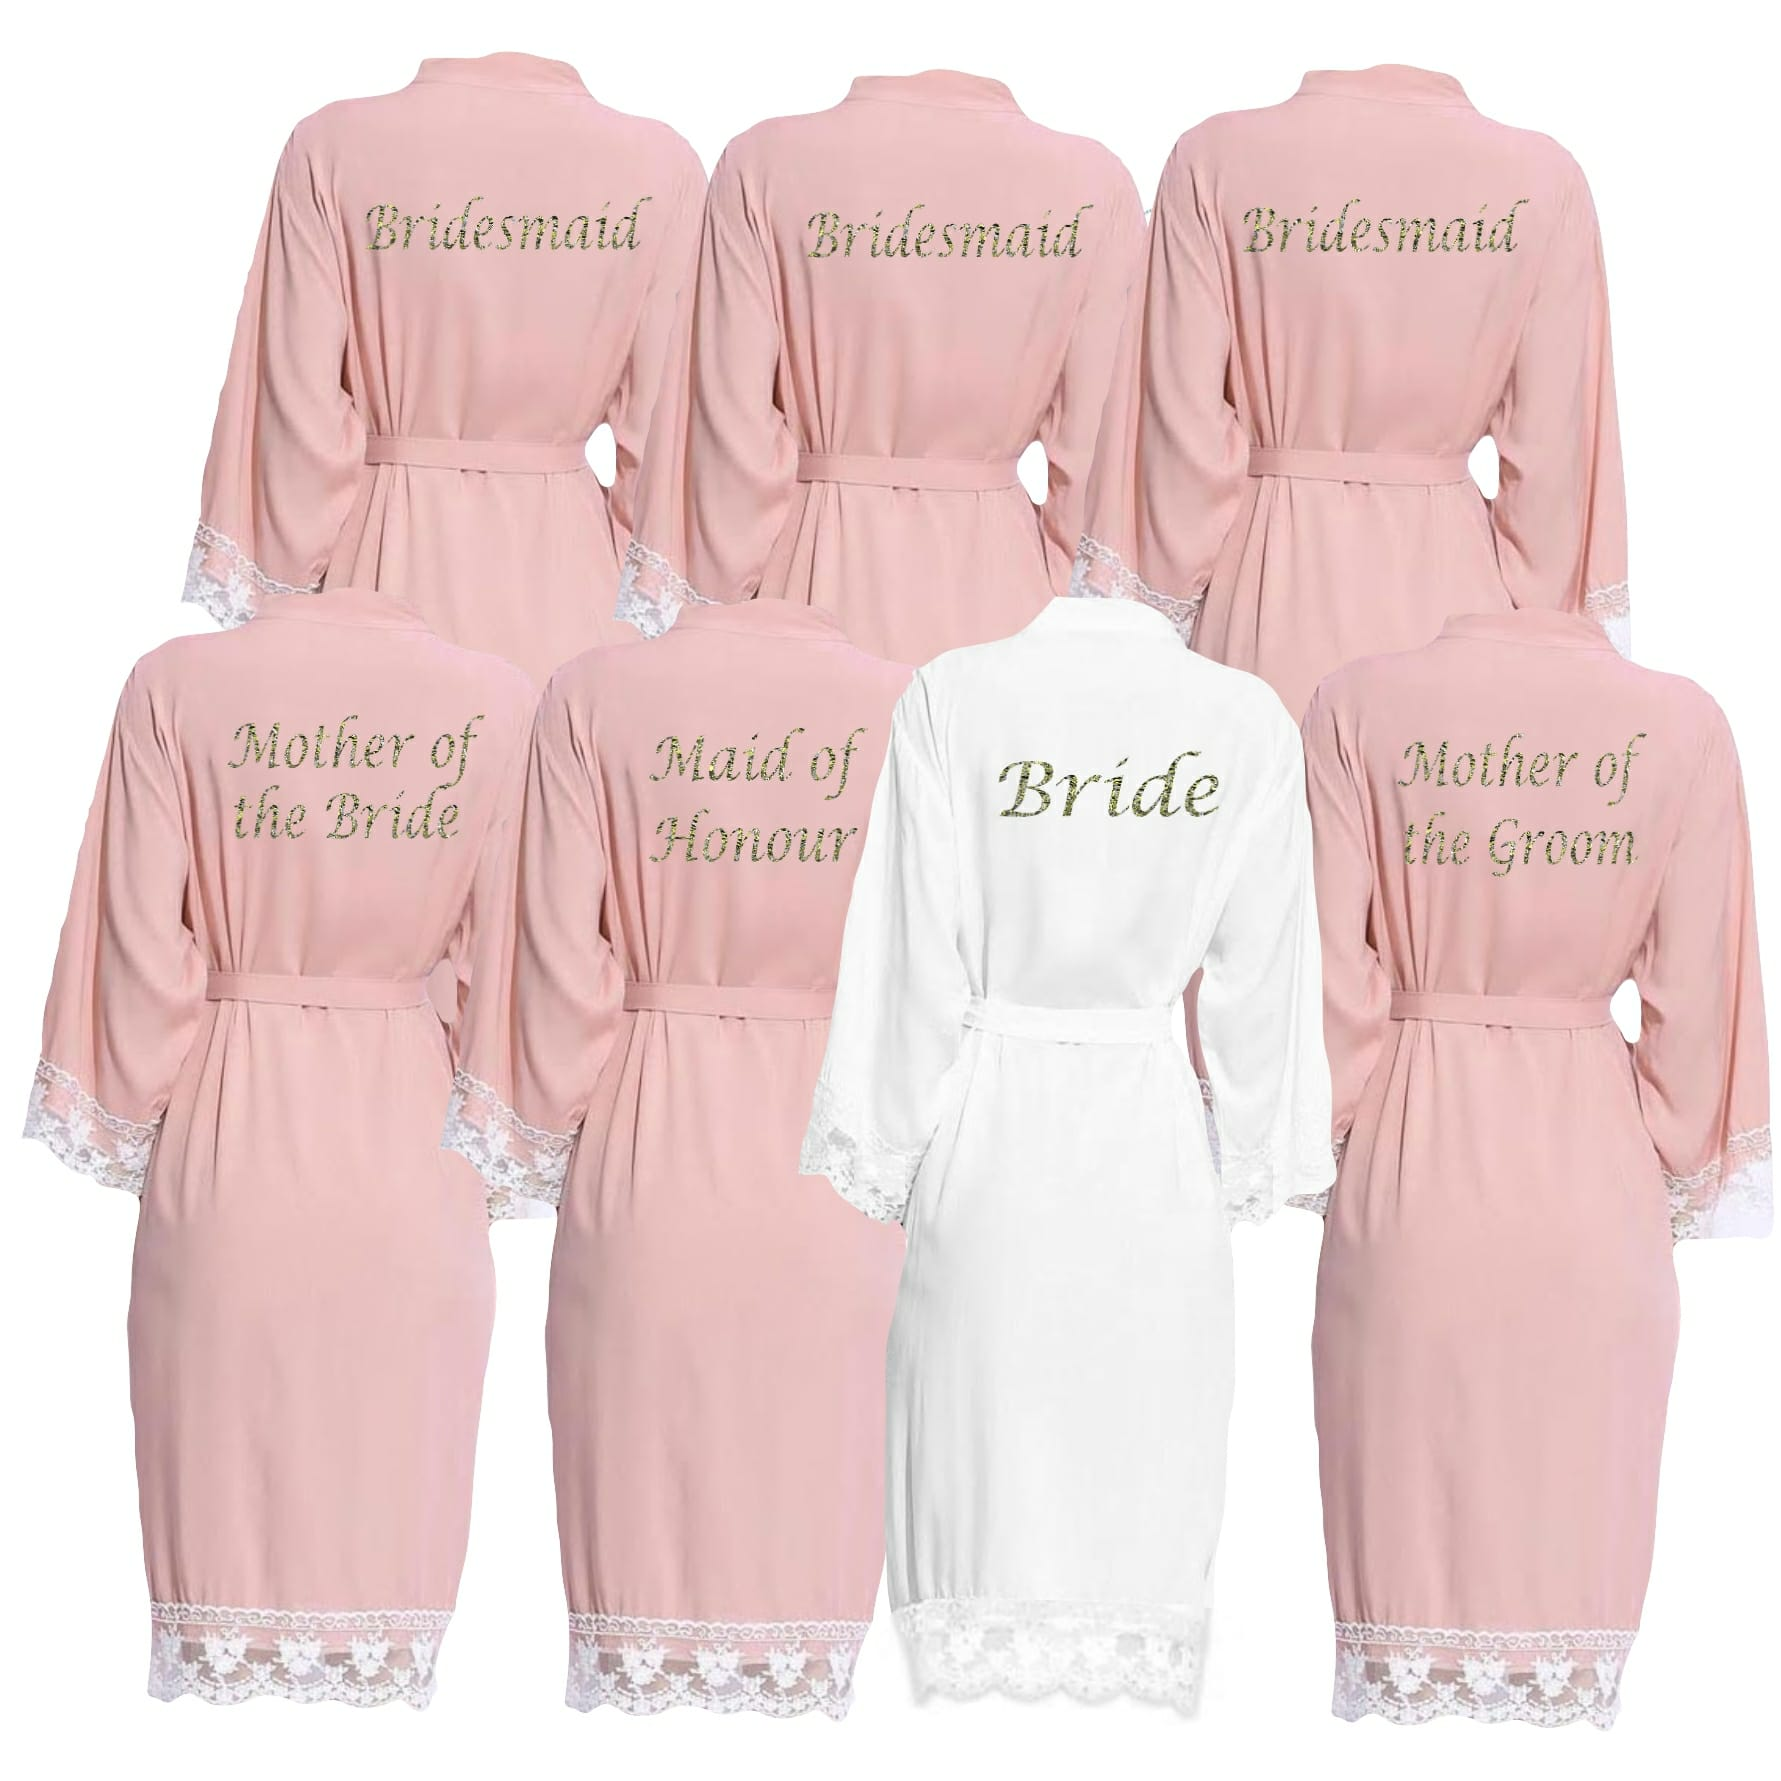 6bb06312239 Blush Pink lace cuff robes - Personalised Dressing Gowns   Bridal ...